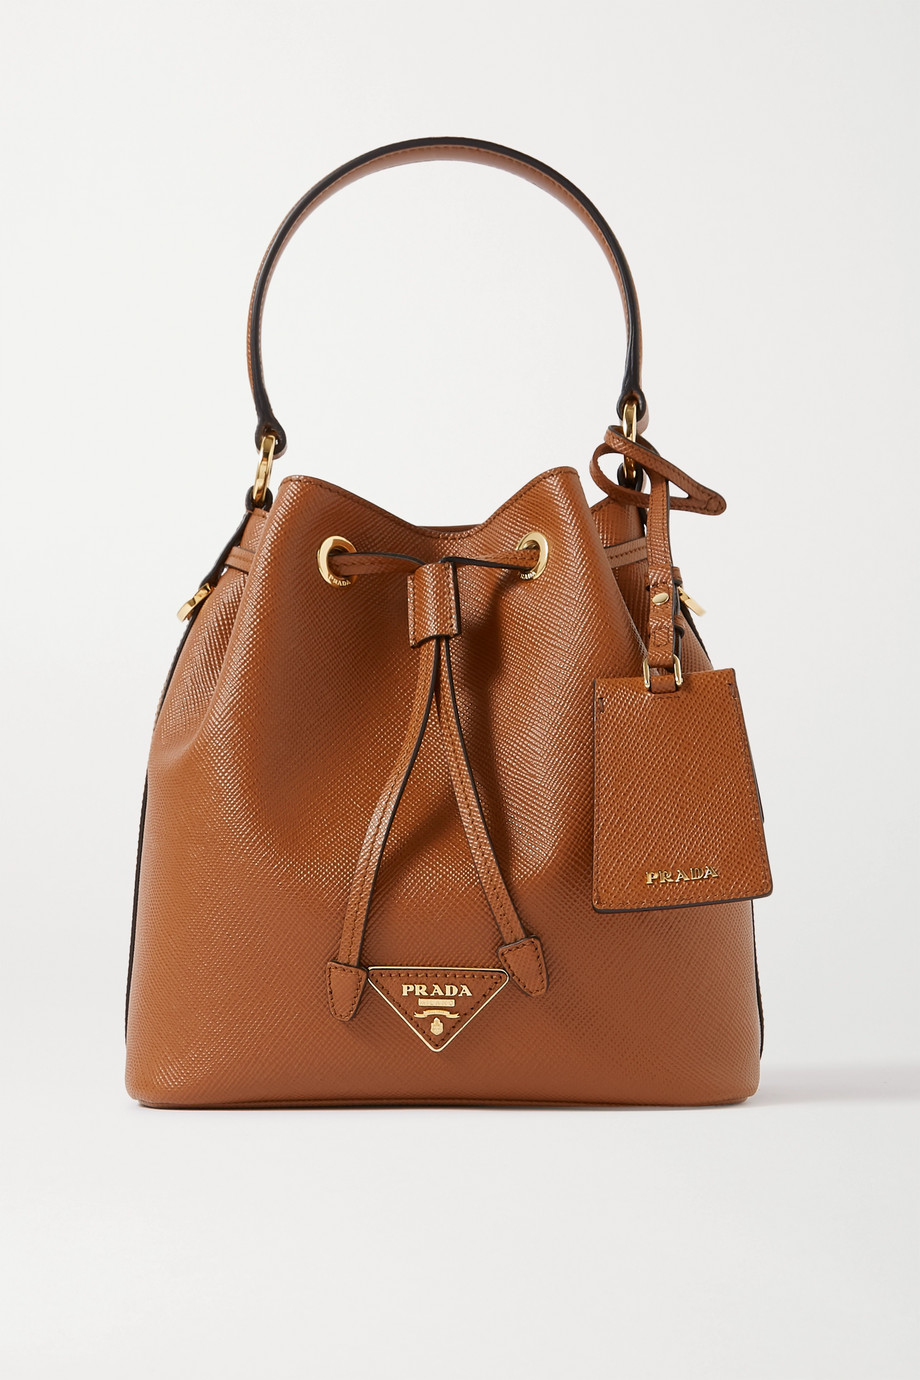 Prada Textured-leather bucket bag